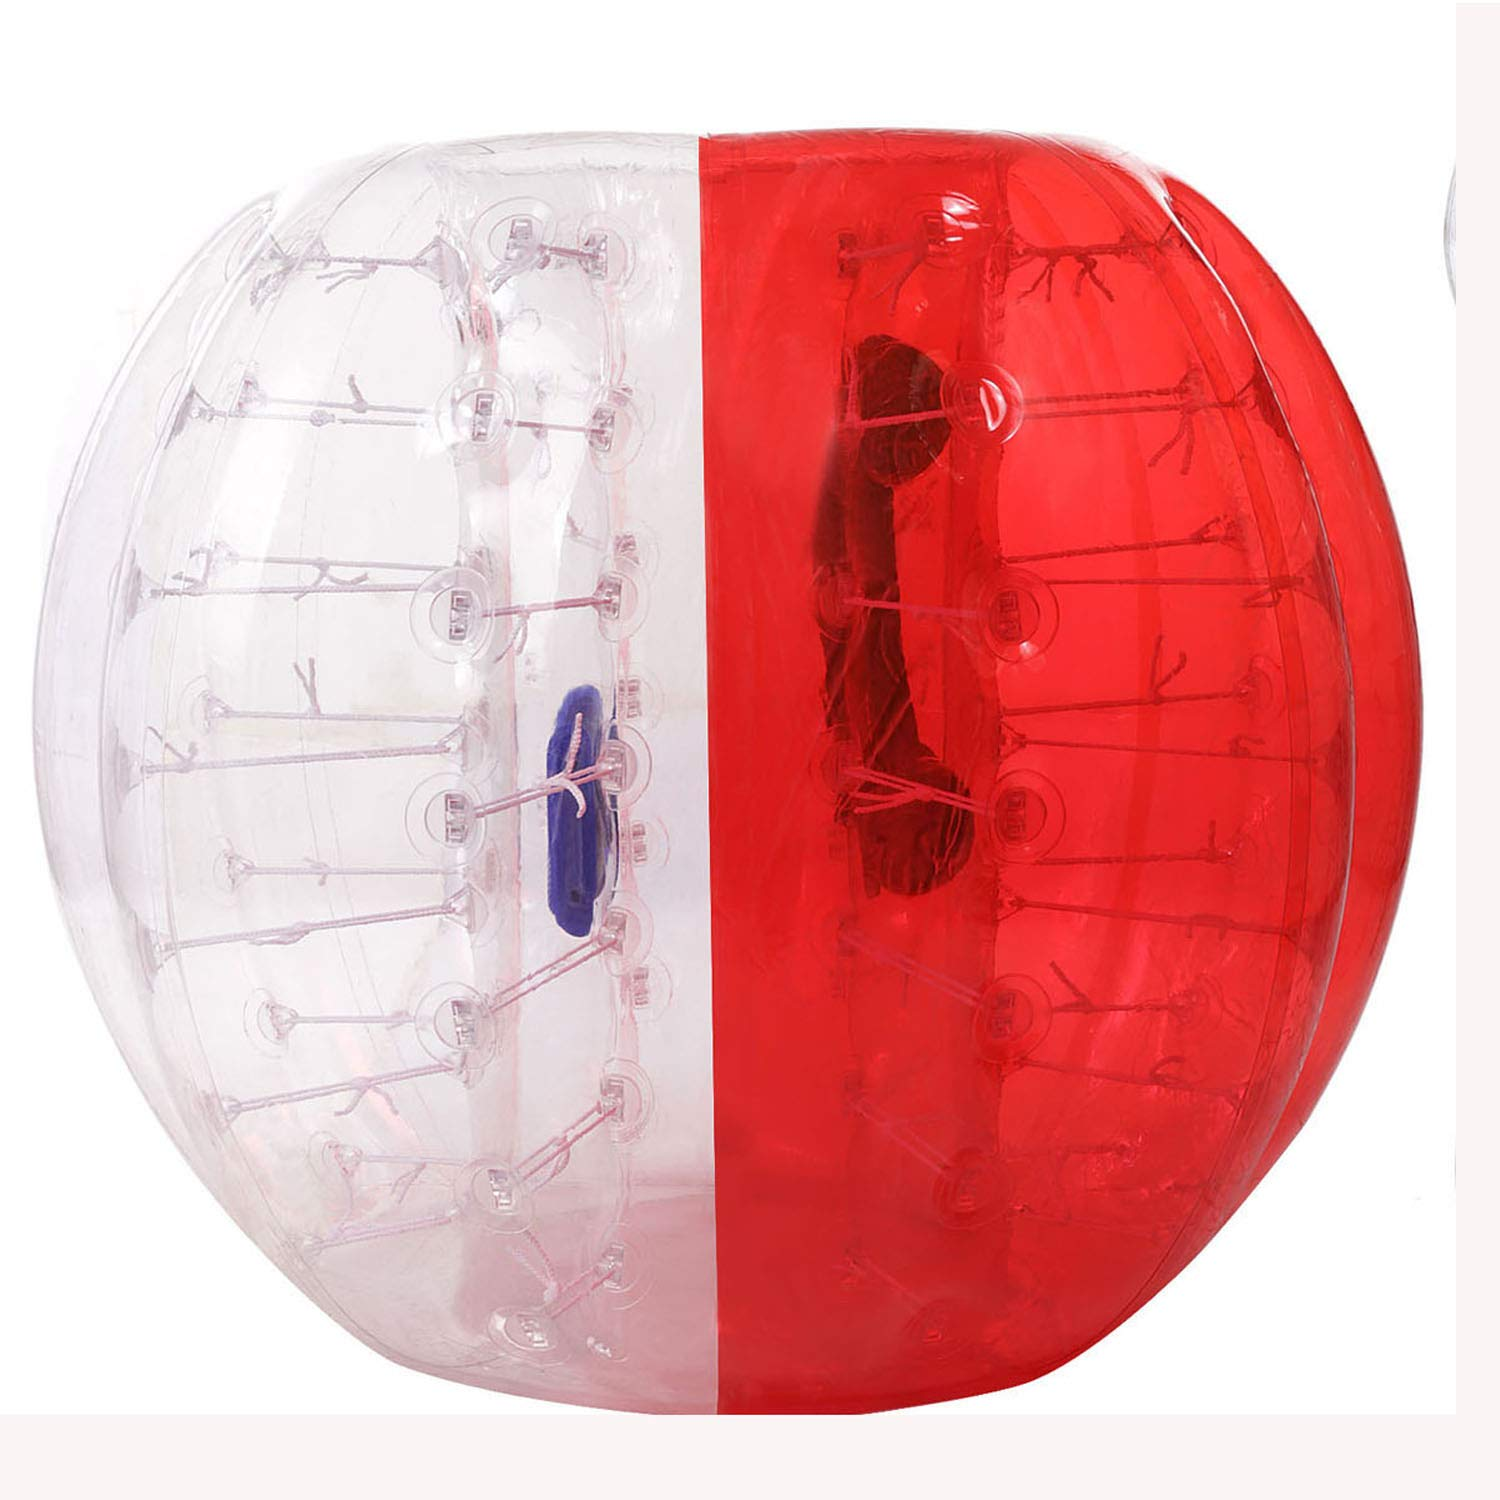 Flyerstoy Inflatable Bumper Ball Diameter 4/5 ft(1.2/1.5m) Bubble Soccer Ball Blow Up Toy,Giant Human Hamster Ball for Adults and Teens (Red&White 5ft)